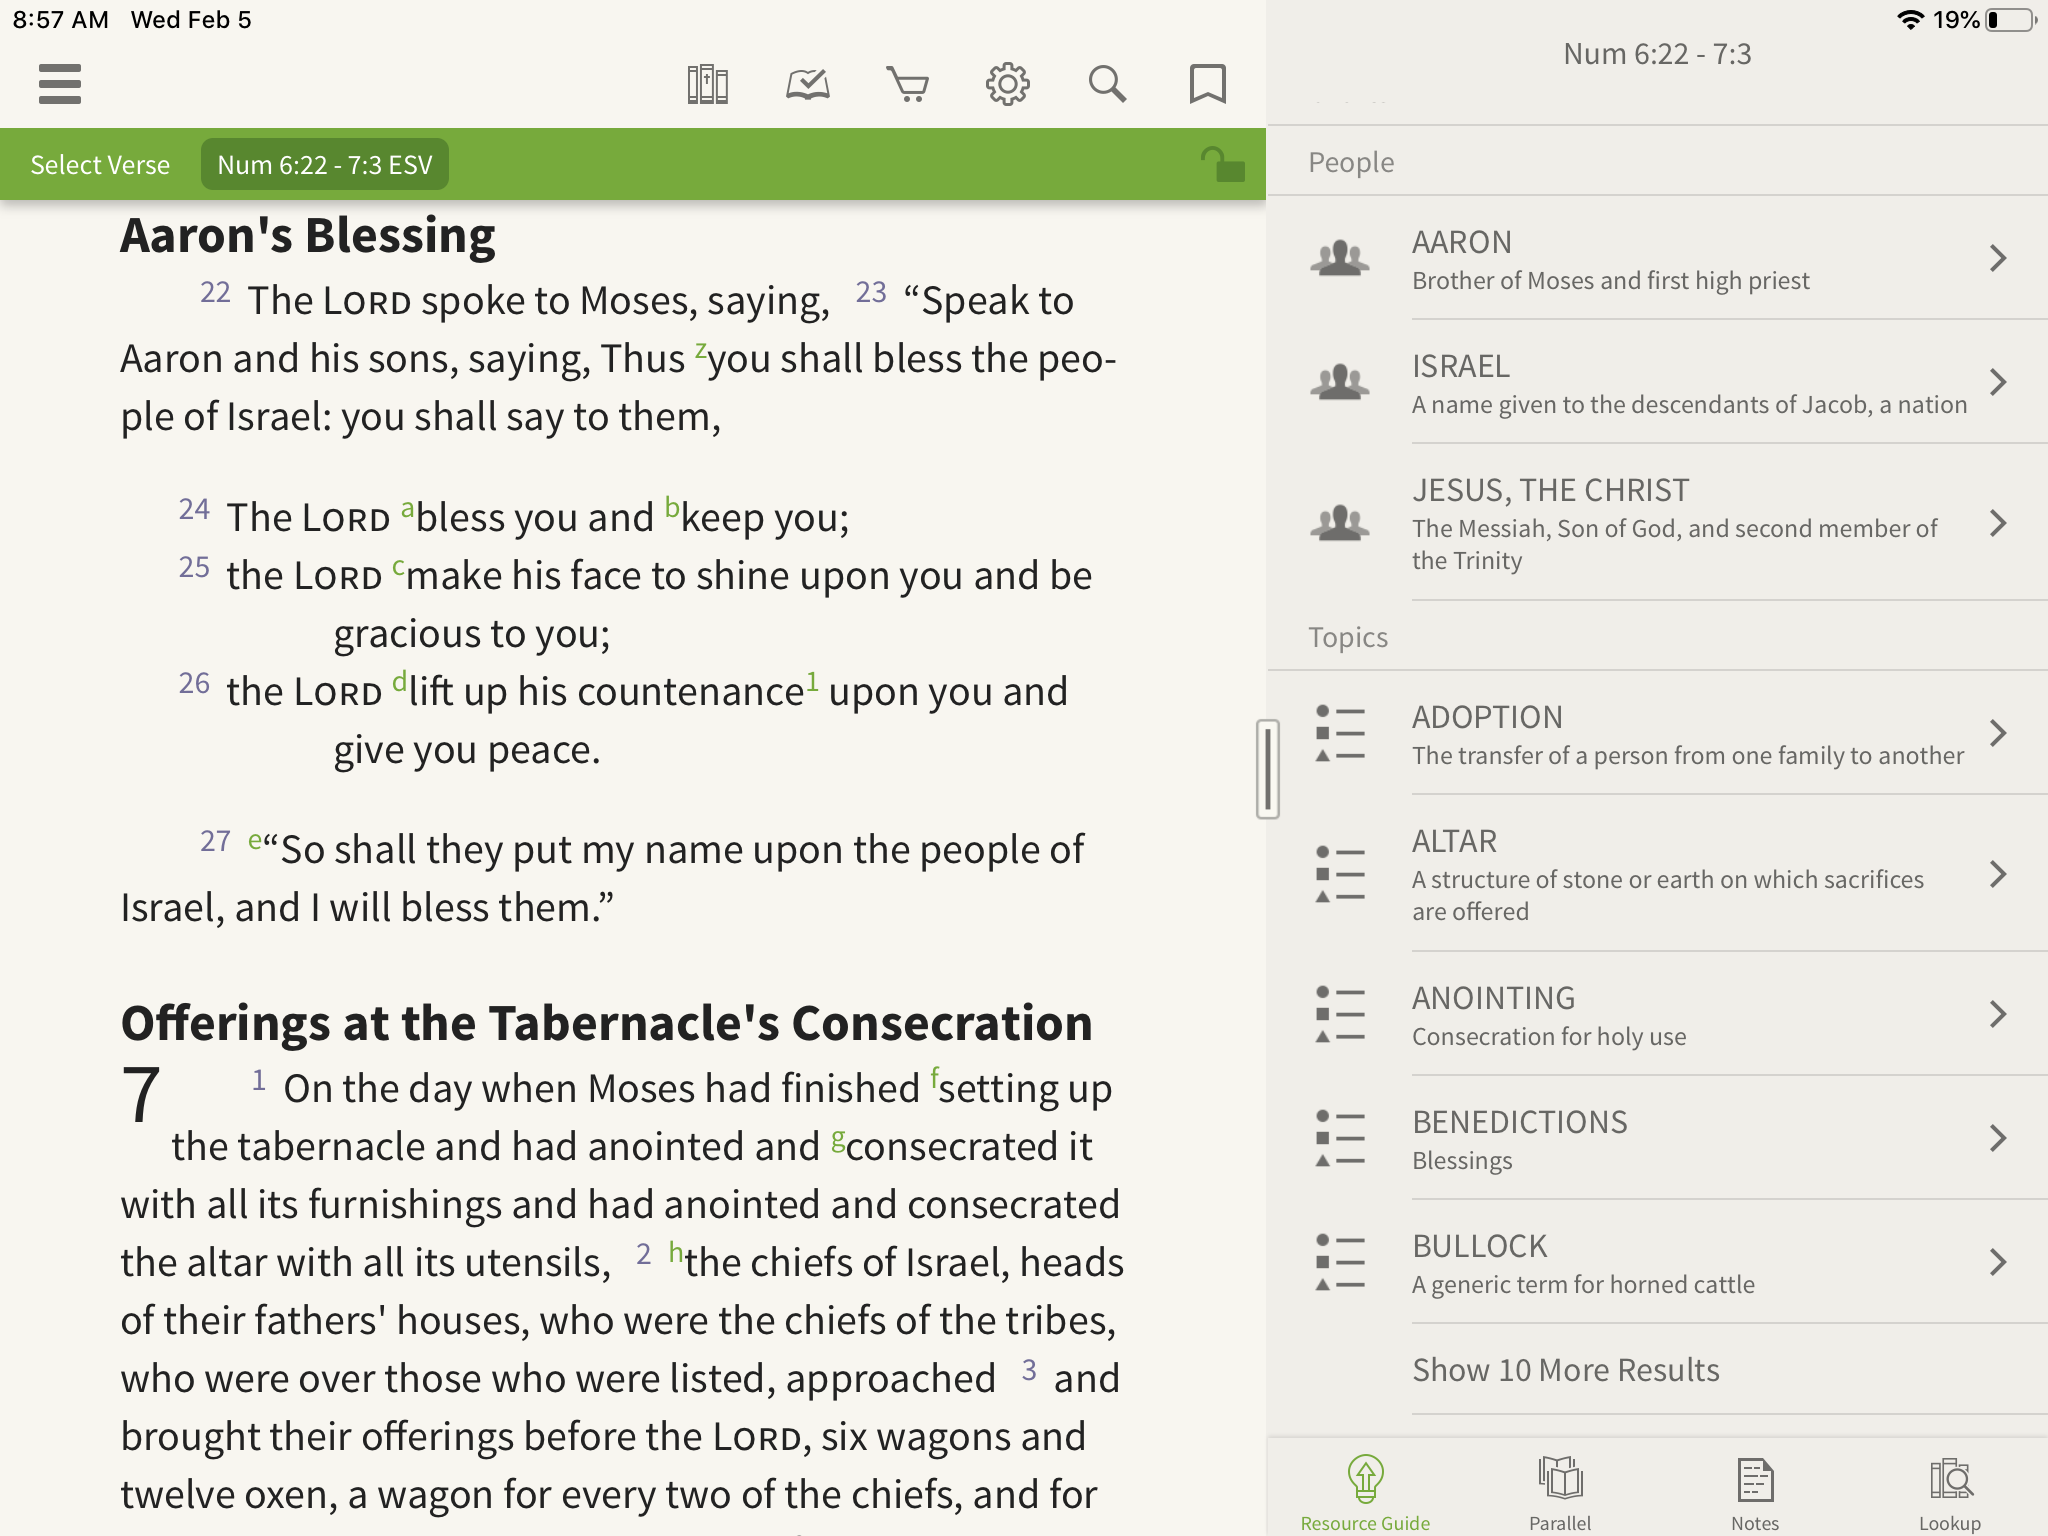 Olive Tree Bible App open to resource guide